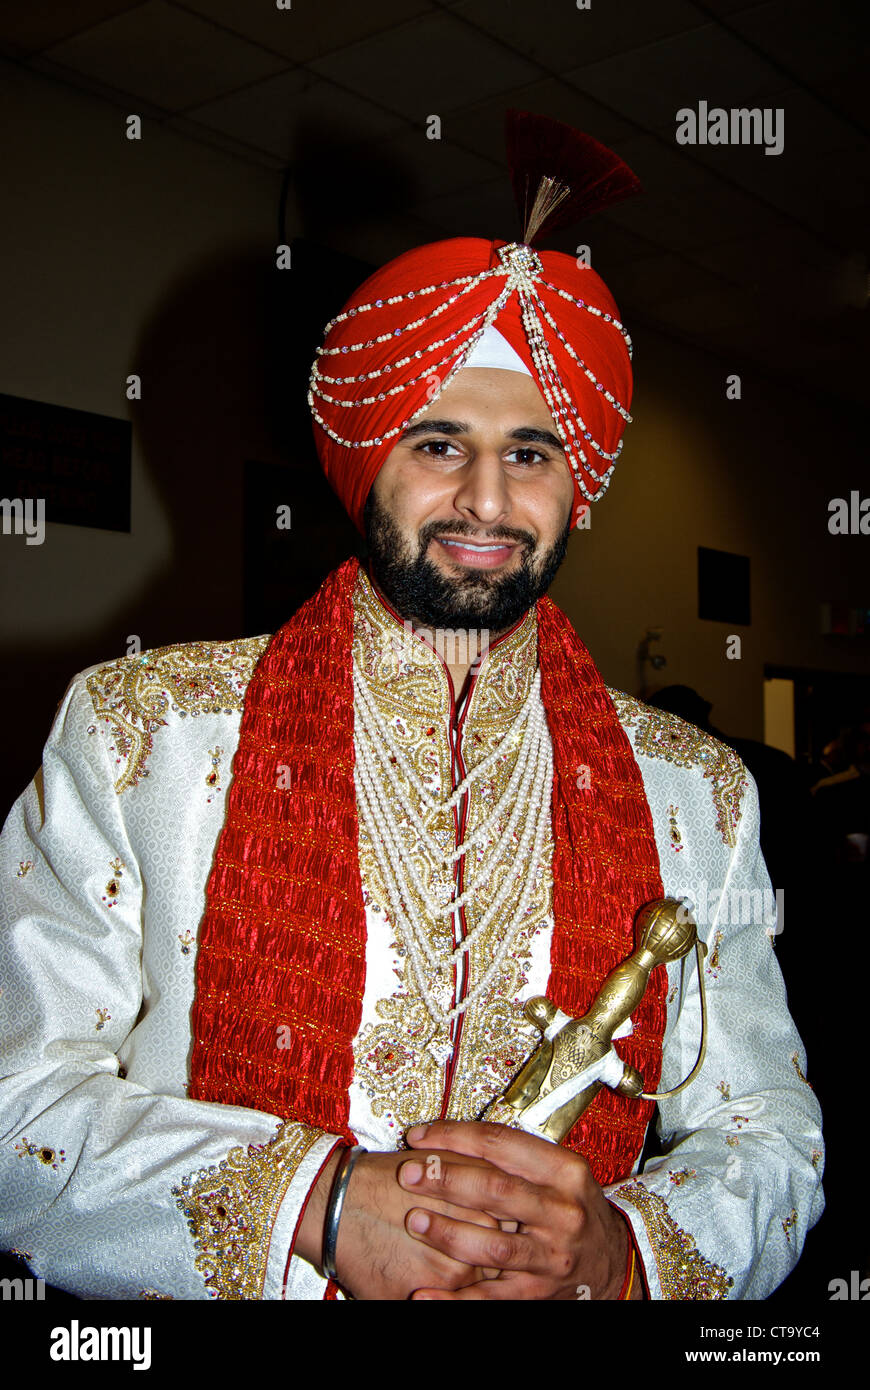 Traditional East Indian wedding groom red turban special pre-ceremony head dress beaded decorations white  sc 1 st  Alamy & East Indian Dress Stock Photos u0026 East Indian Dress Stock Images - Alamy